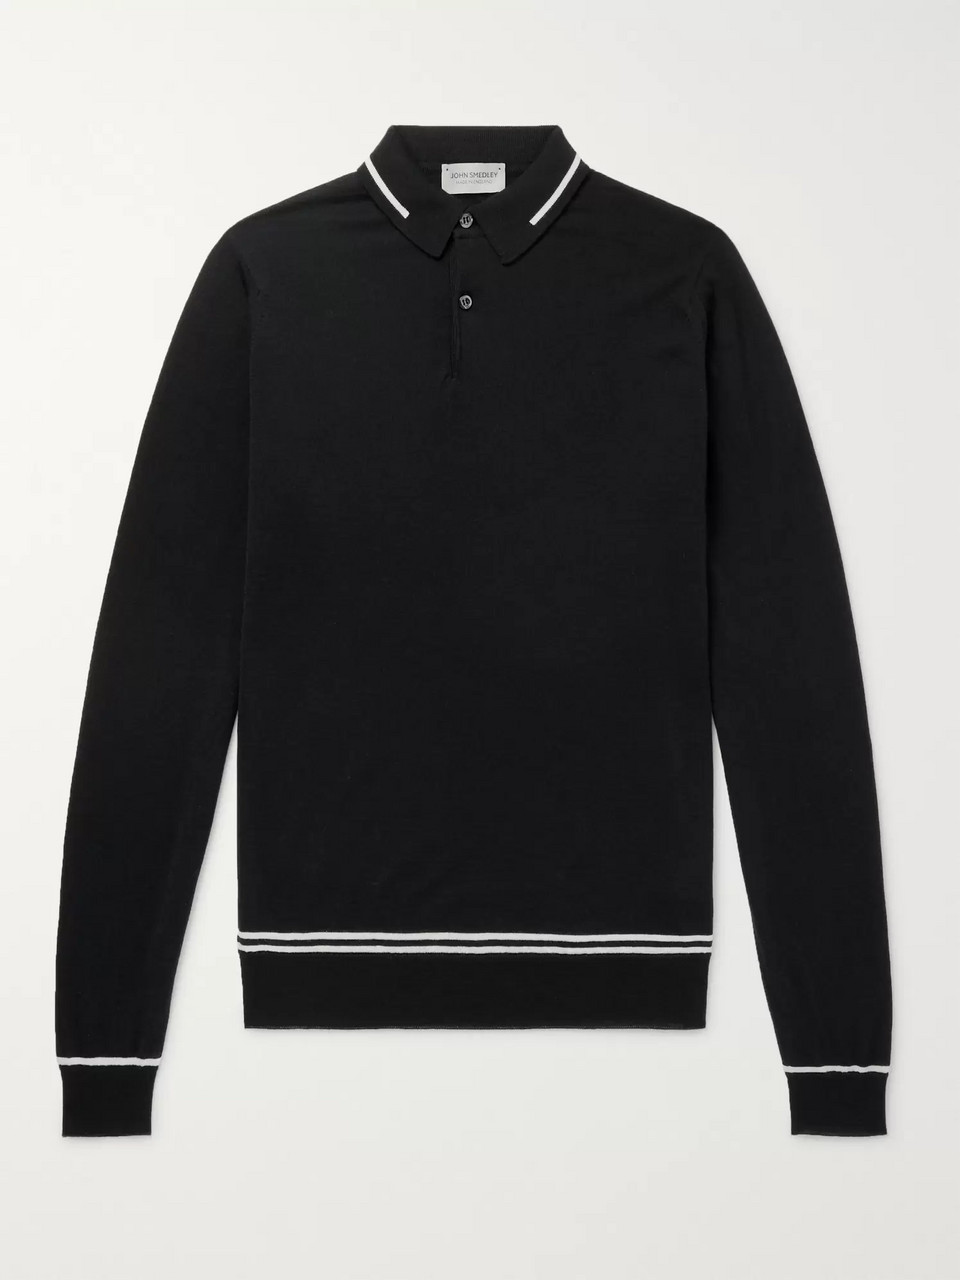 John Smedley Treeby Contrast-Tipped Wool Polo Shirt